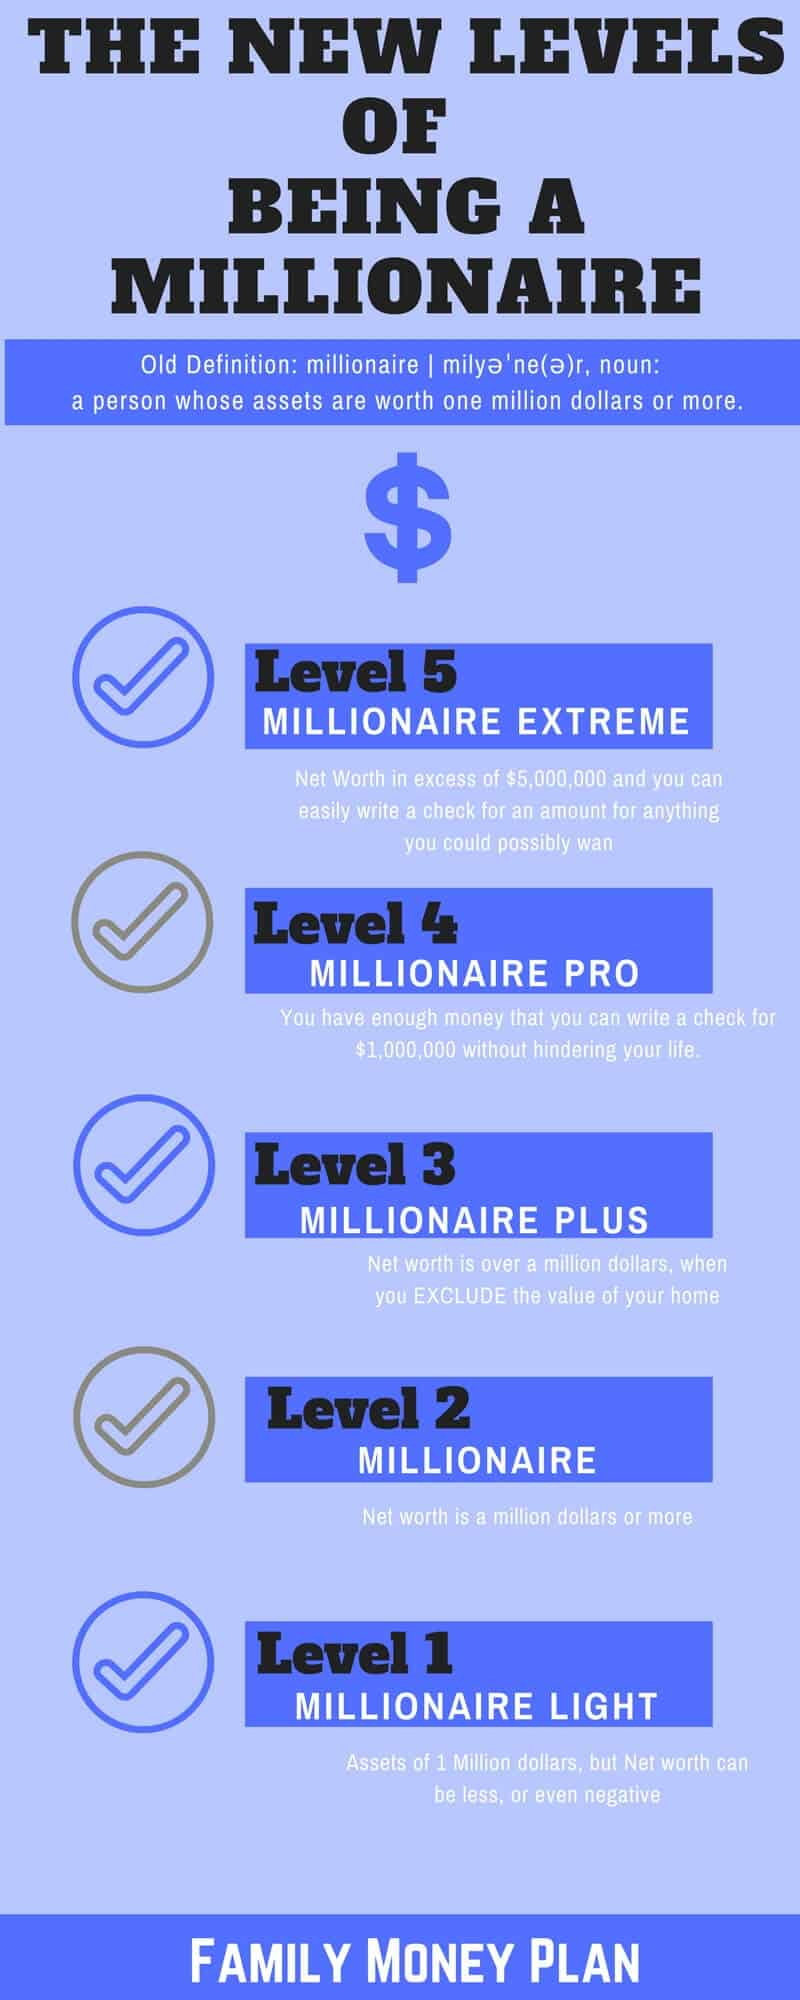 Think you know what a Millionaire is? Think again! | New Levels of Being a Millionaire |Net Worth| Assets | Liabilities |